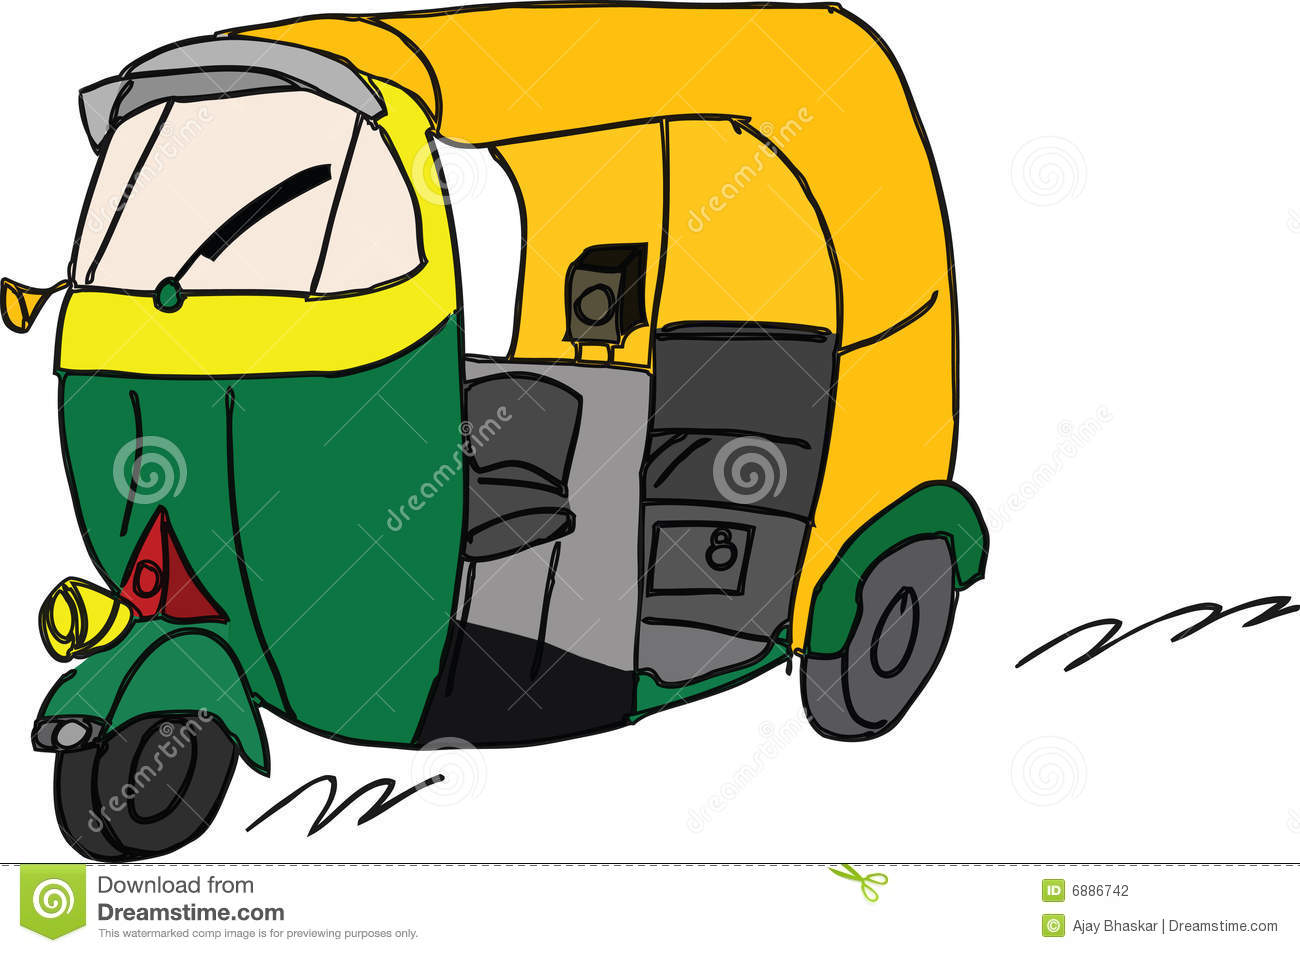 Cycle rickshaw clipart png library Rickshaw Stock Illustrations – 475 Rickshaw Stock Illustrations ... png library